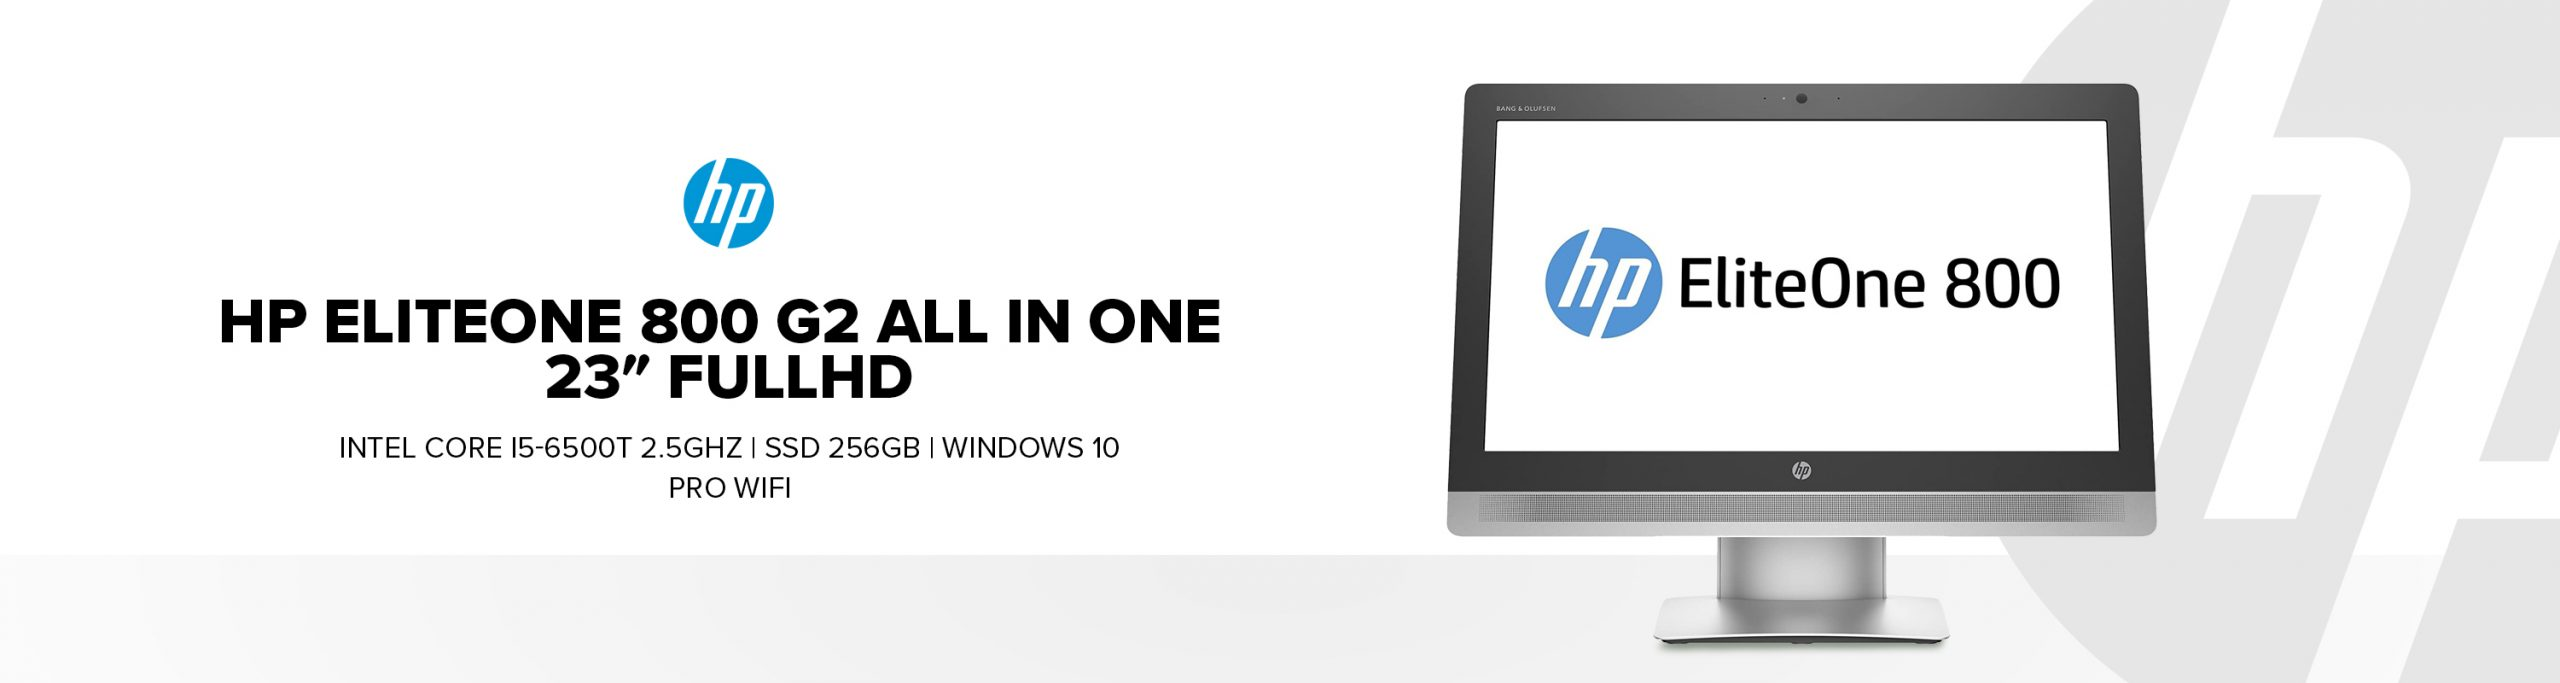 HP 800 G2 All in one